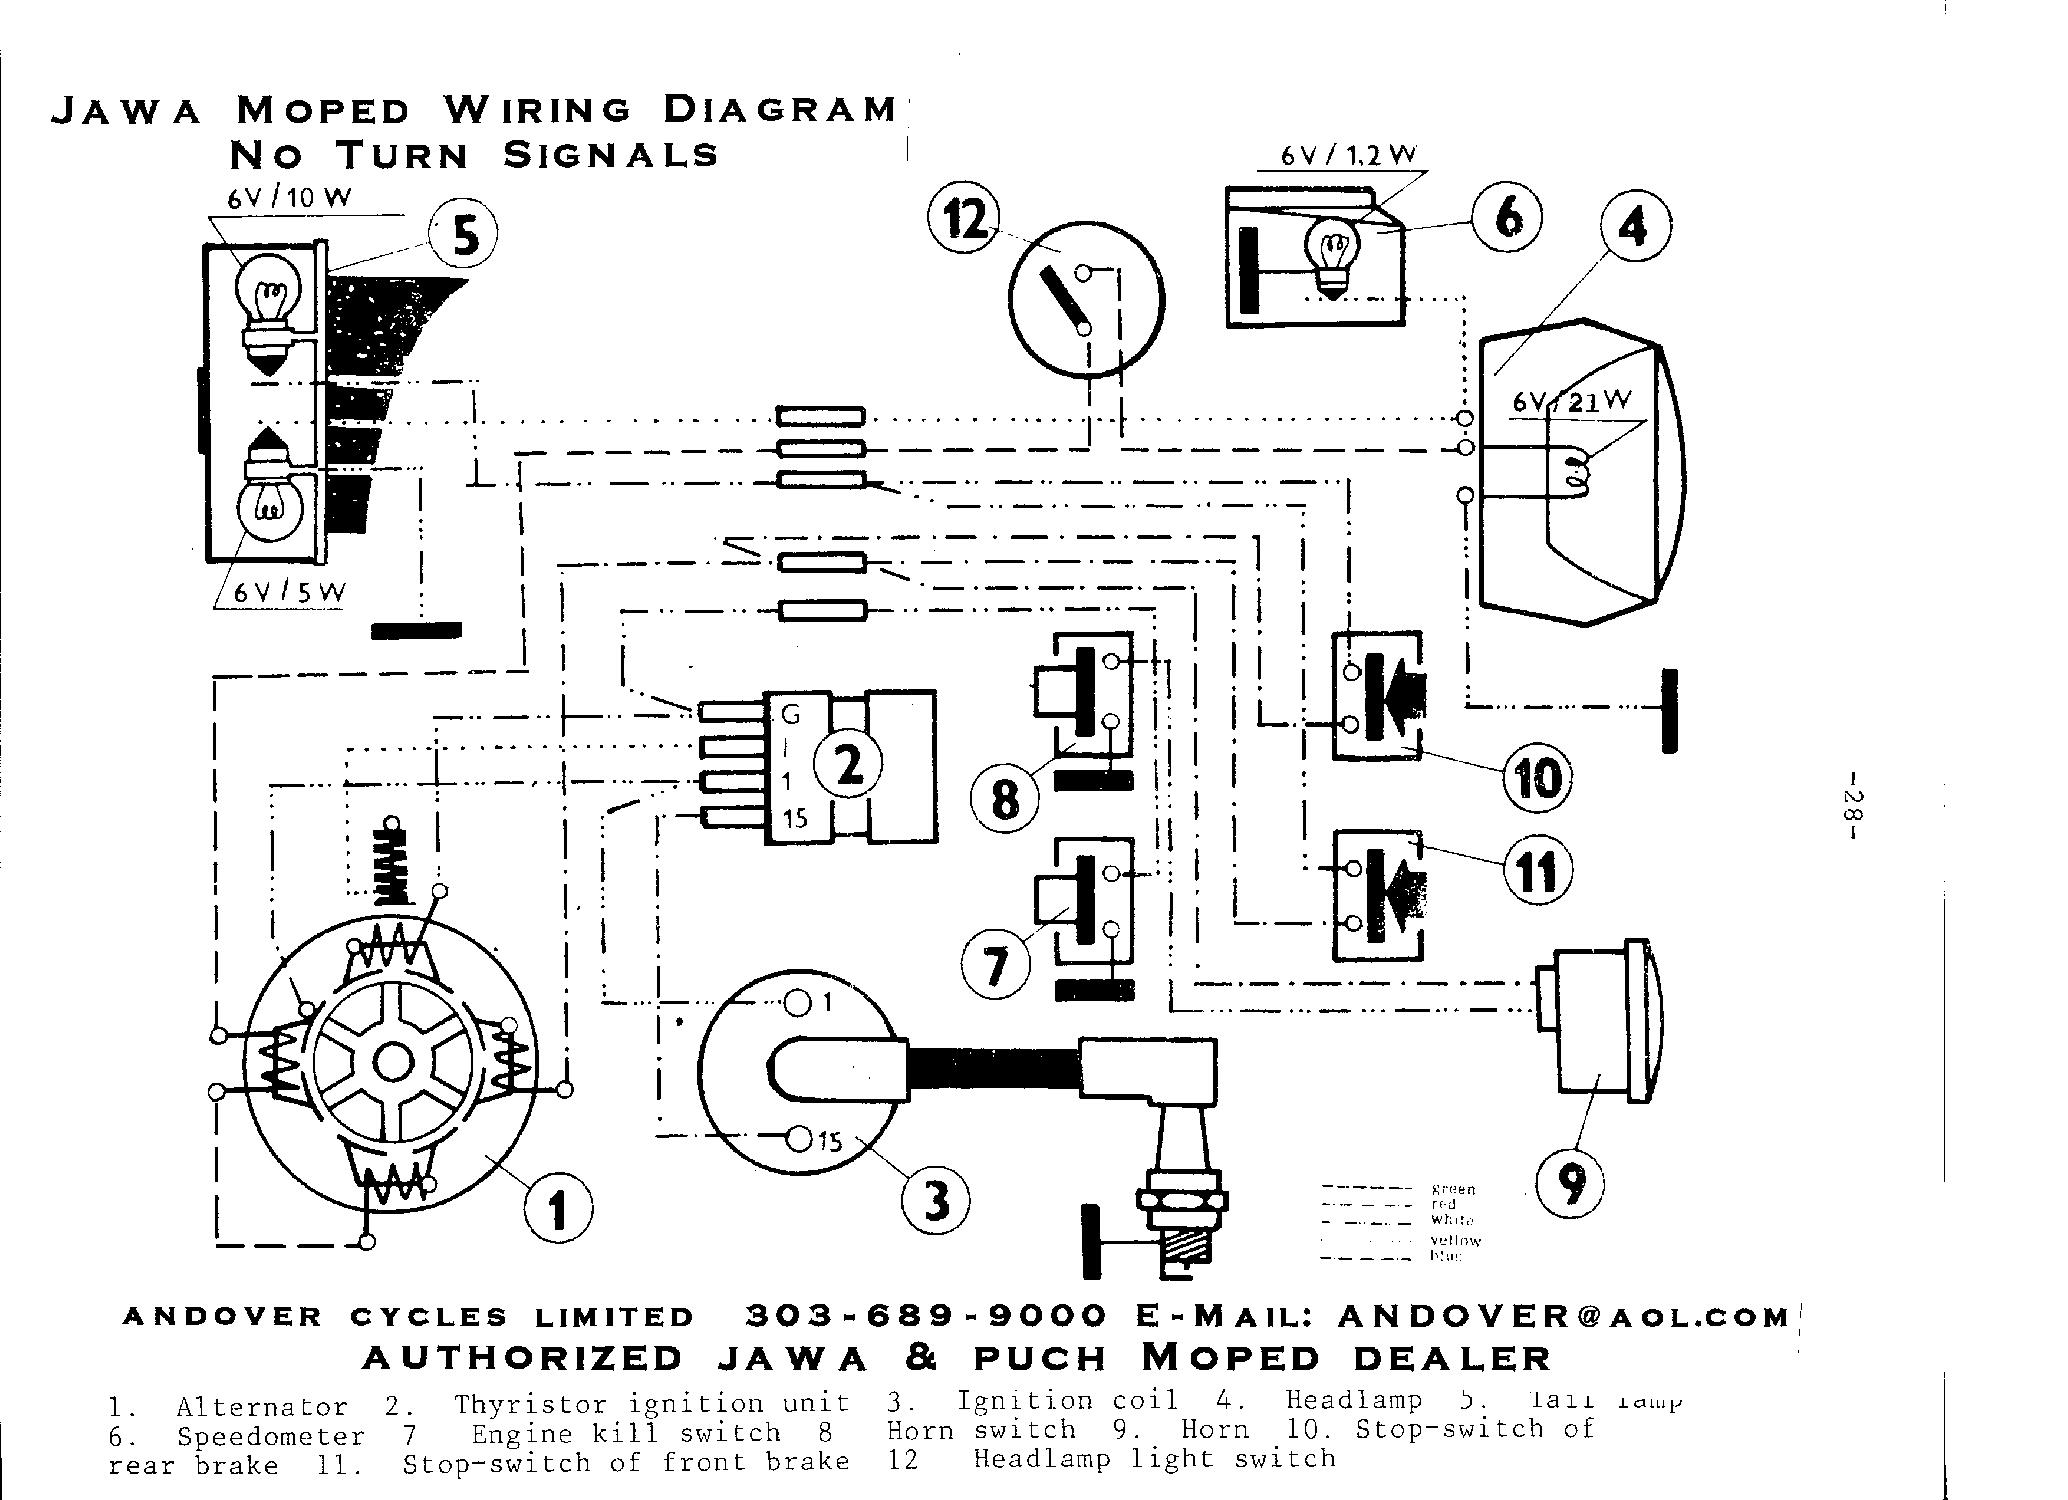 [WRG-4083] 10 2011 Tomos Moped Wiring Diagram